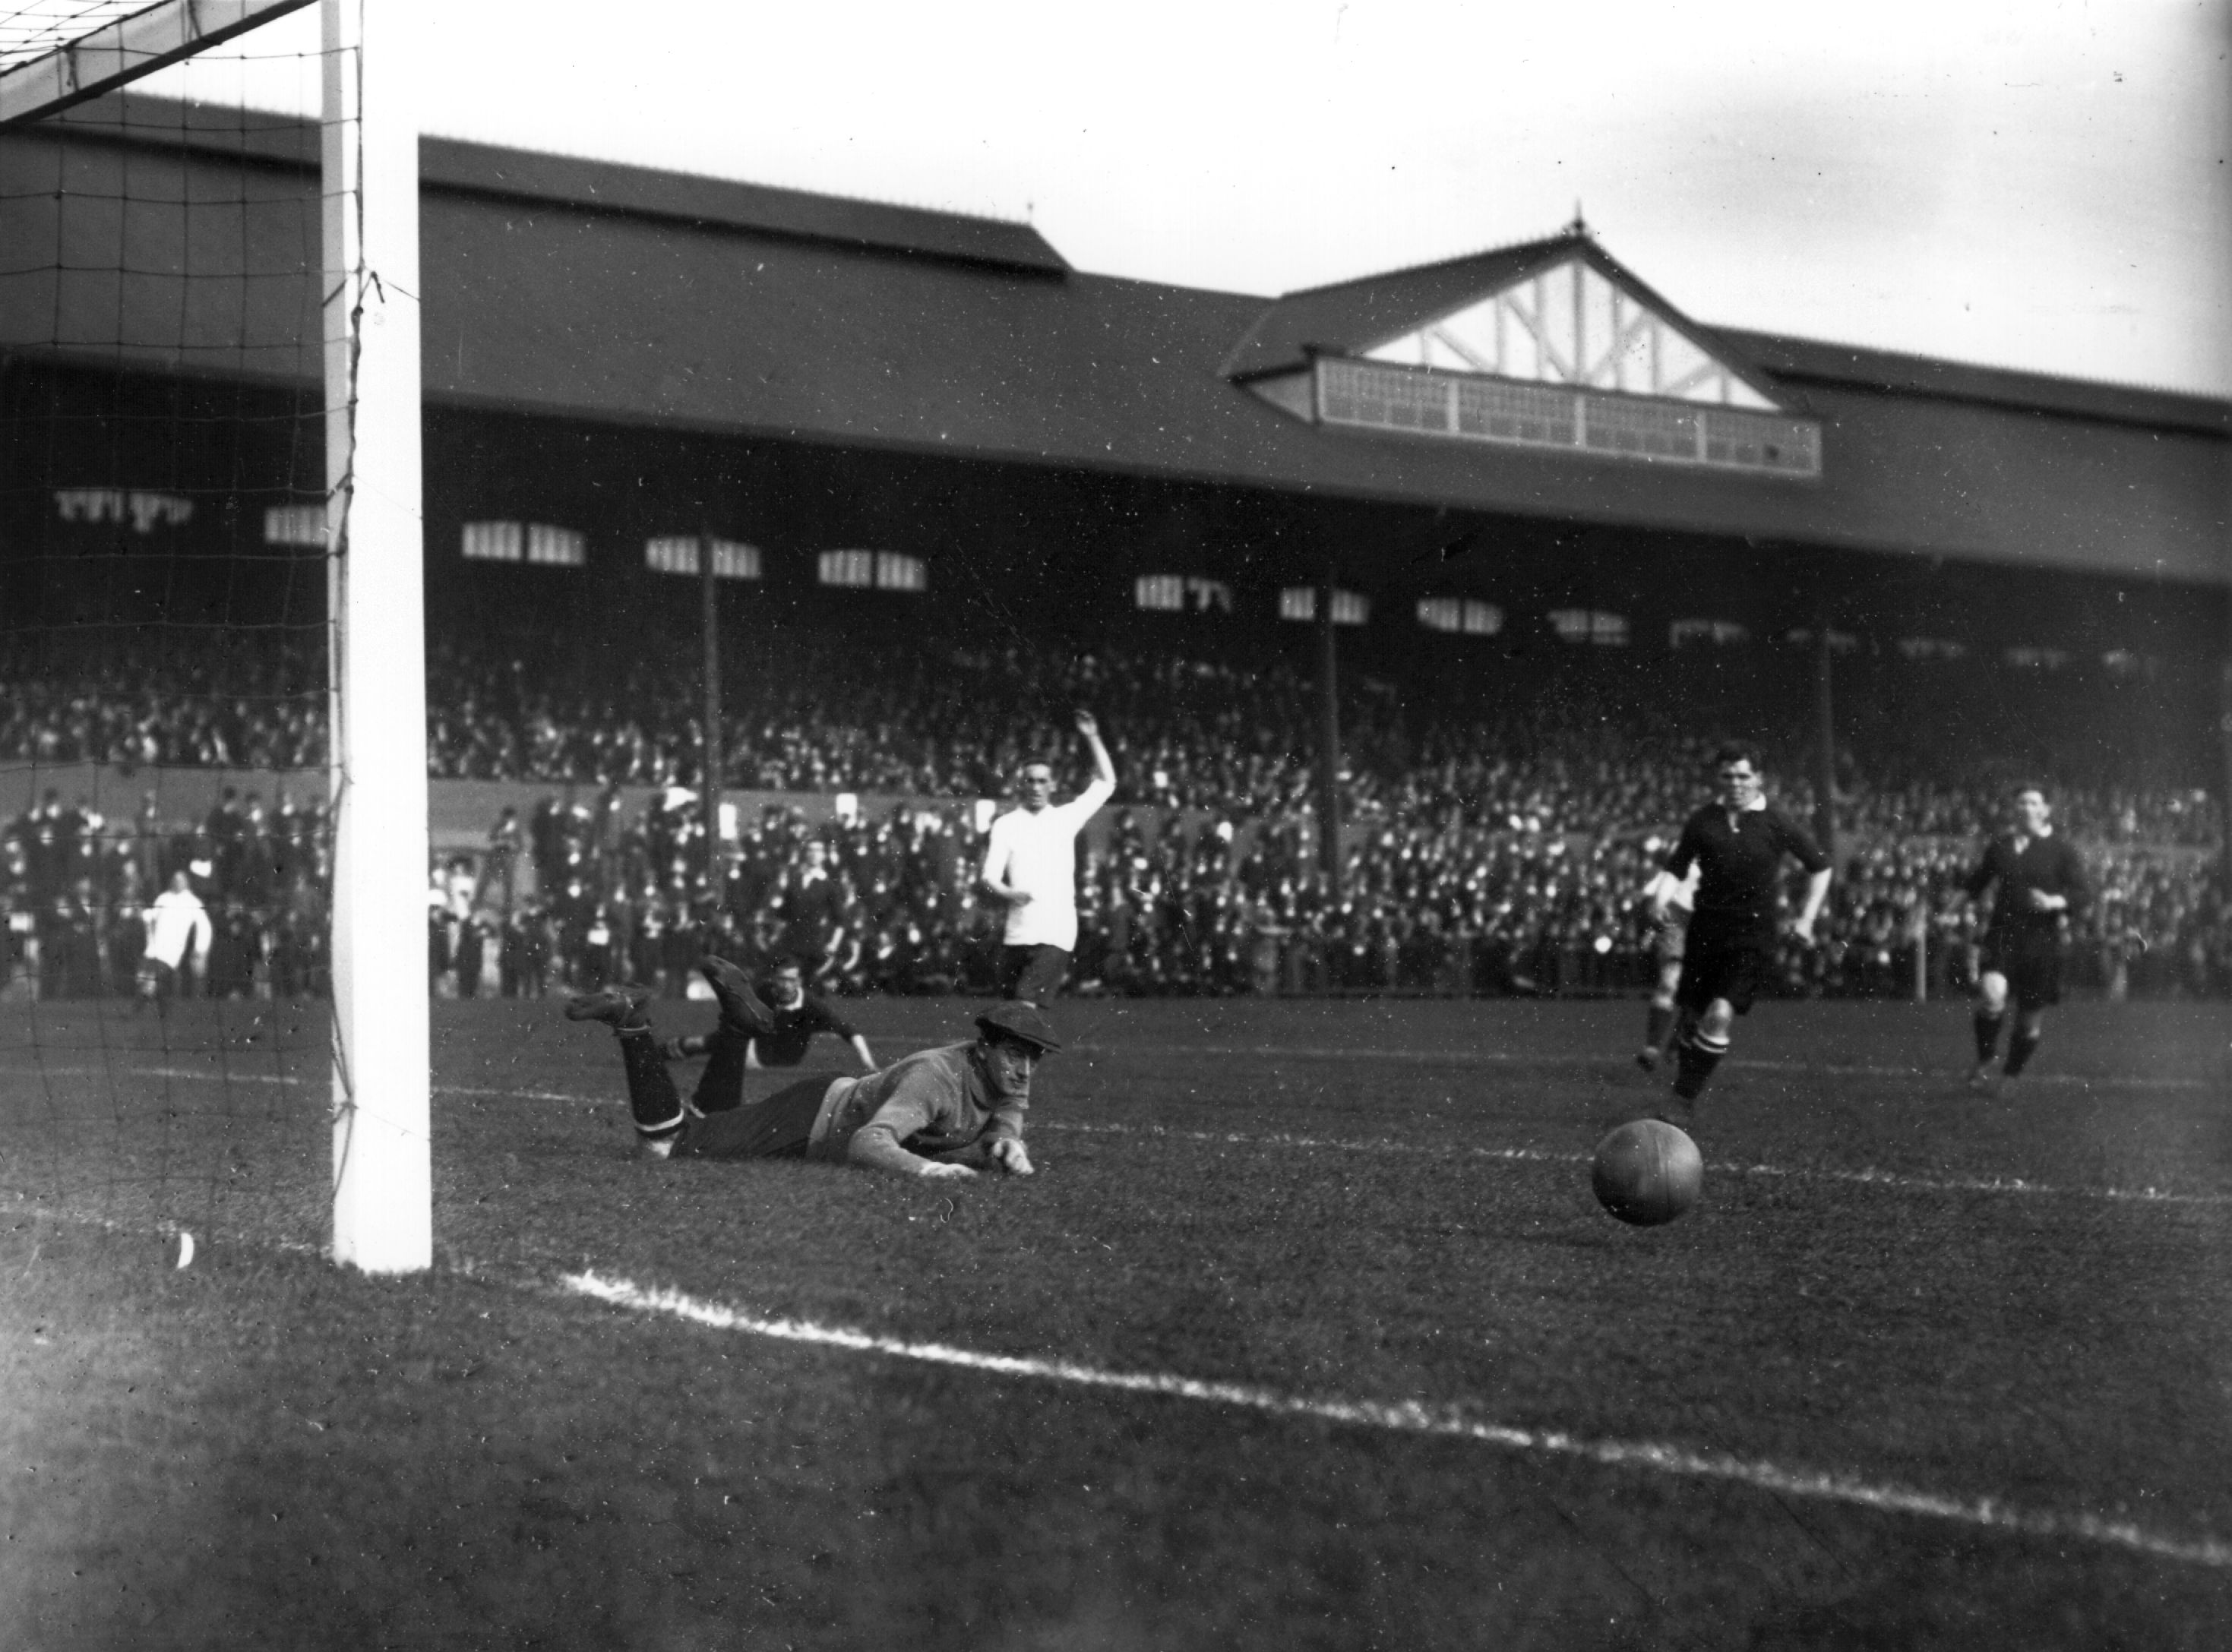 21st September 1912: Fulham's goalkeeper pushes the ball from the goalmouth during their match against Bury at Craven Cottage. (Photo by Topical Press Agency/Getty Images)